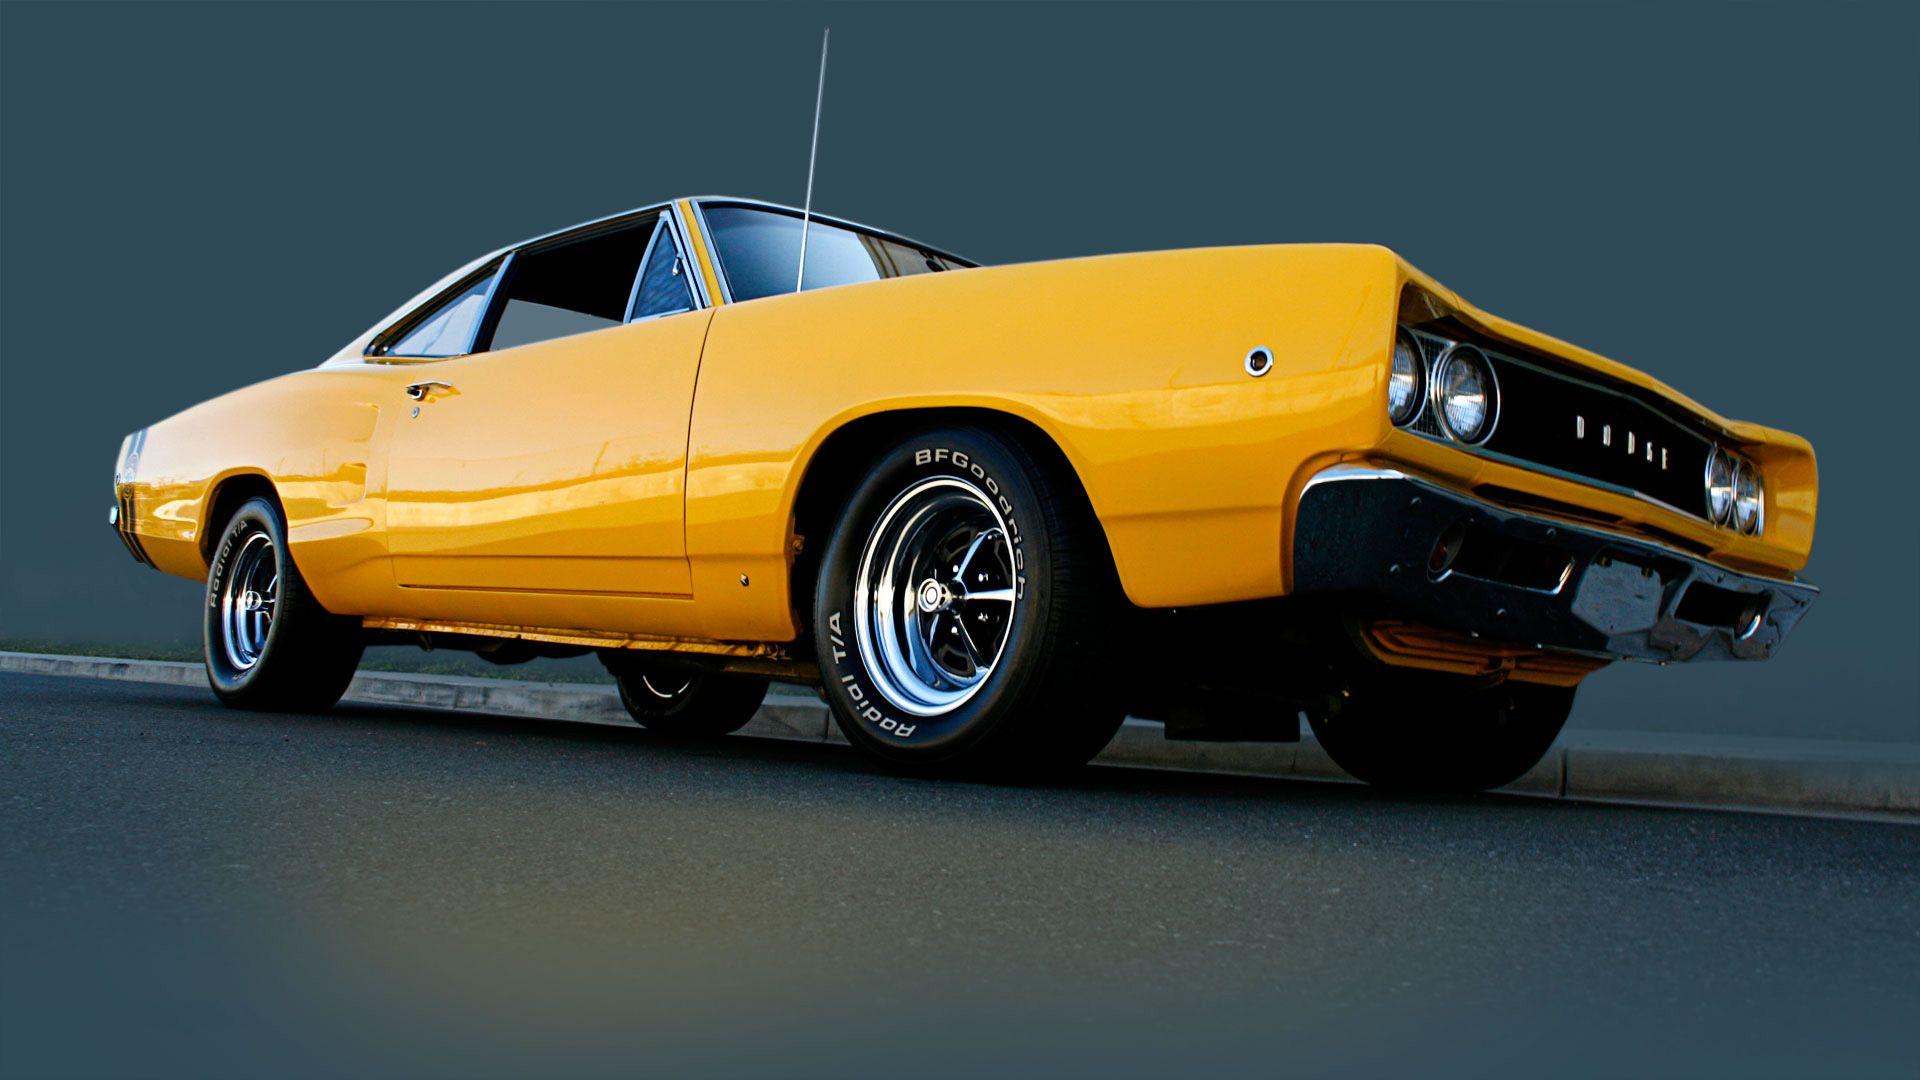 Super bee cars motorcycles pinterest bees cars and vehicle